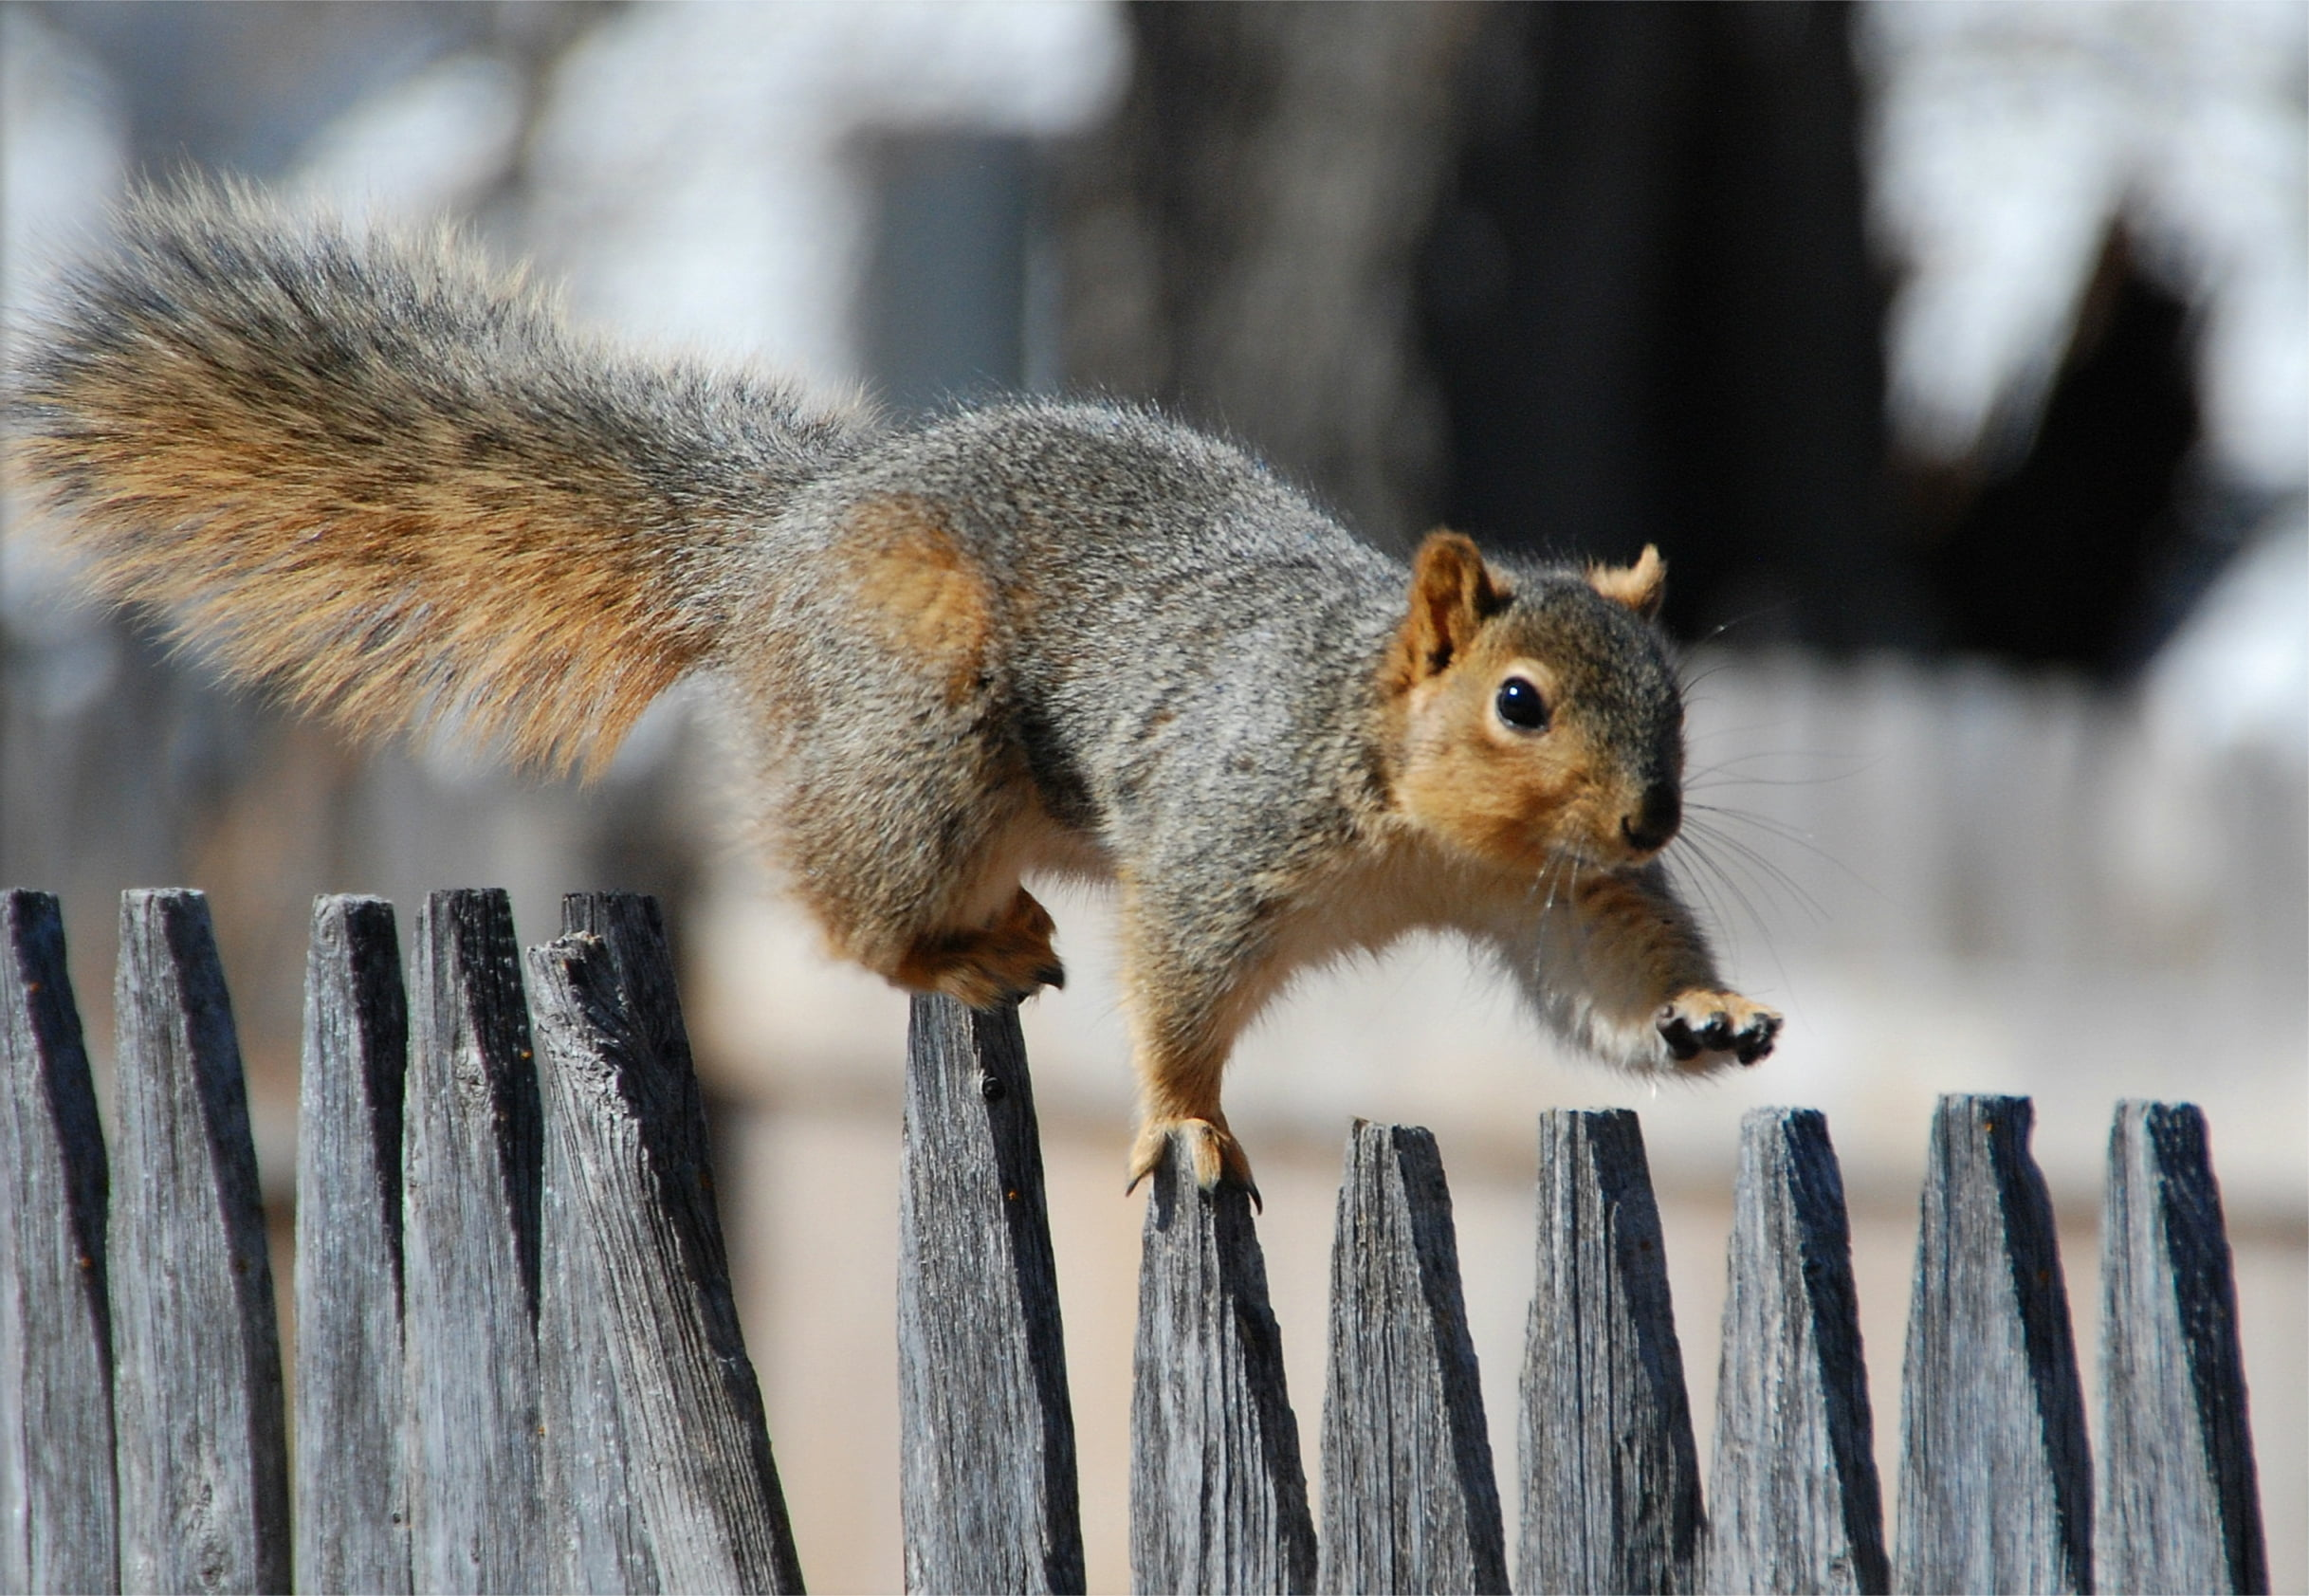 Photo of squirrel on fence HD wallpaper | Wallpaper Flare